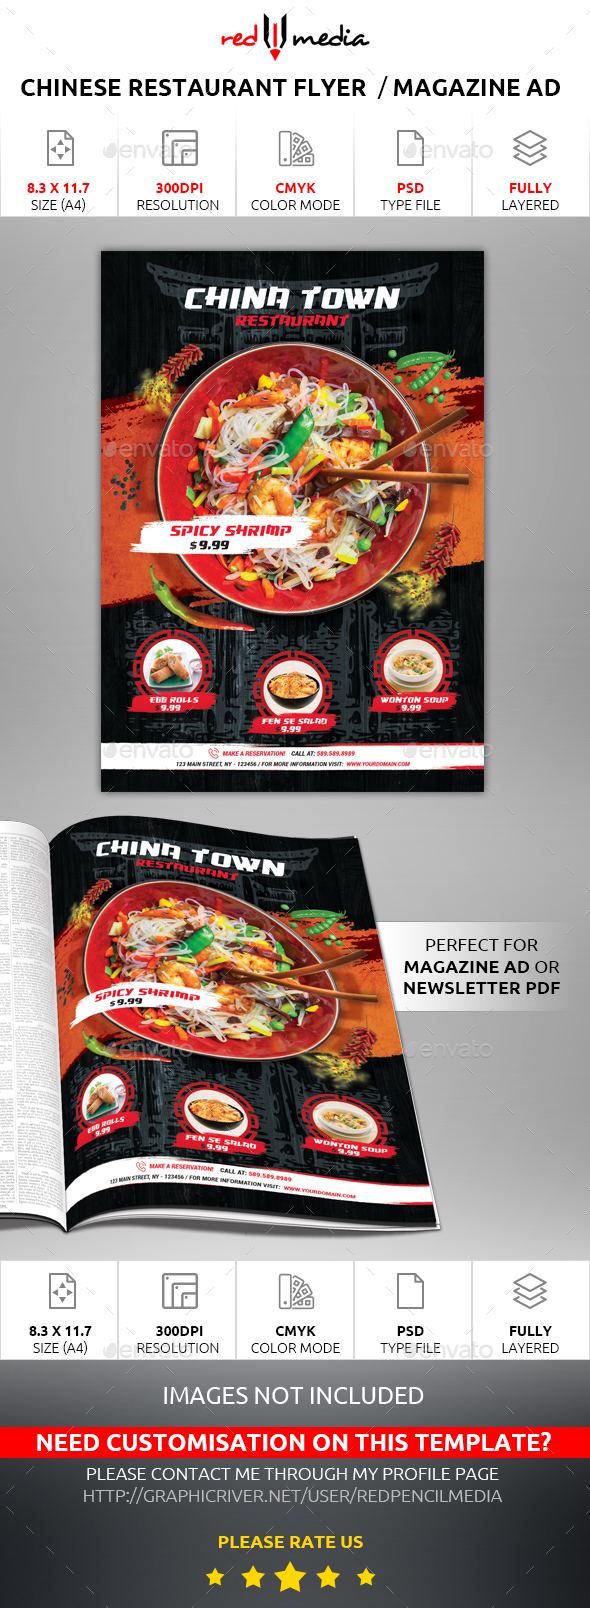 Chinese Restaurant Flyer / Magazine AD - Restaurant Flyers